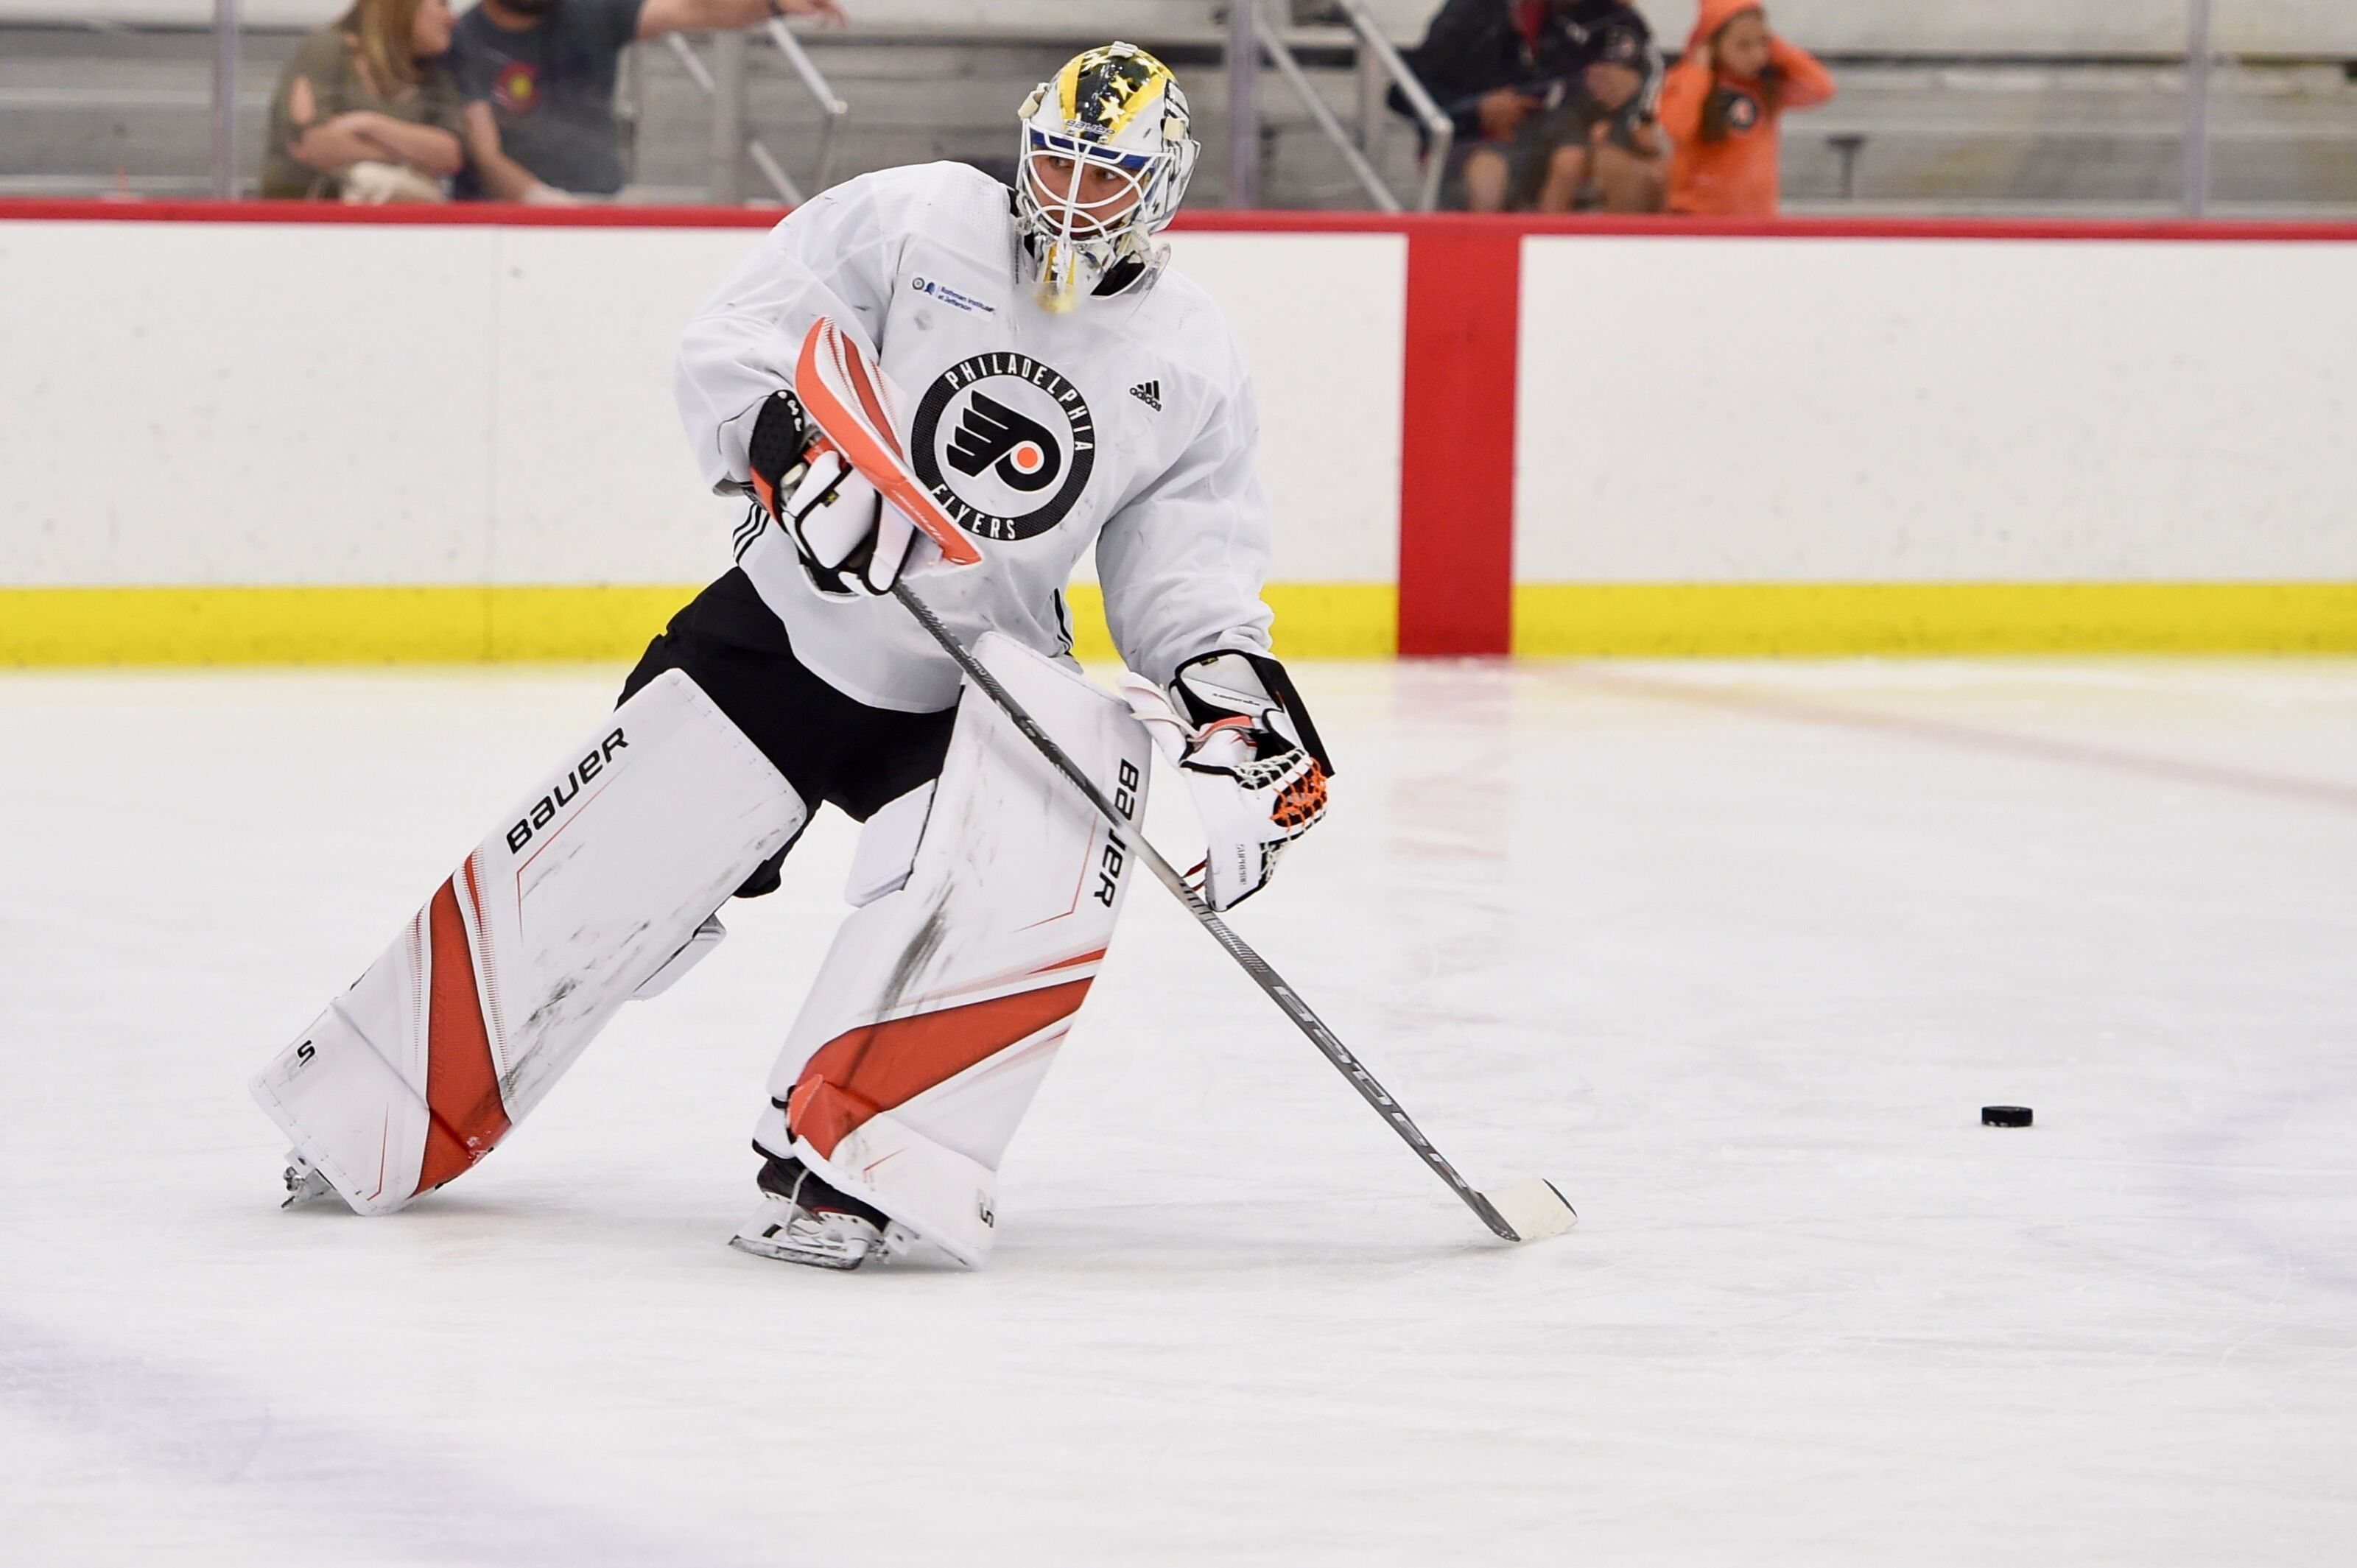 Philadelphia Flyers Top Five Goaltending Prospects In The System